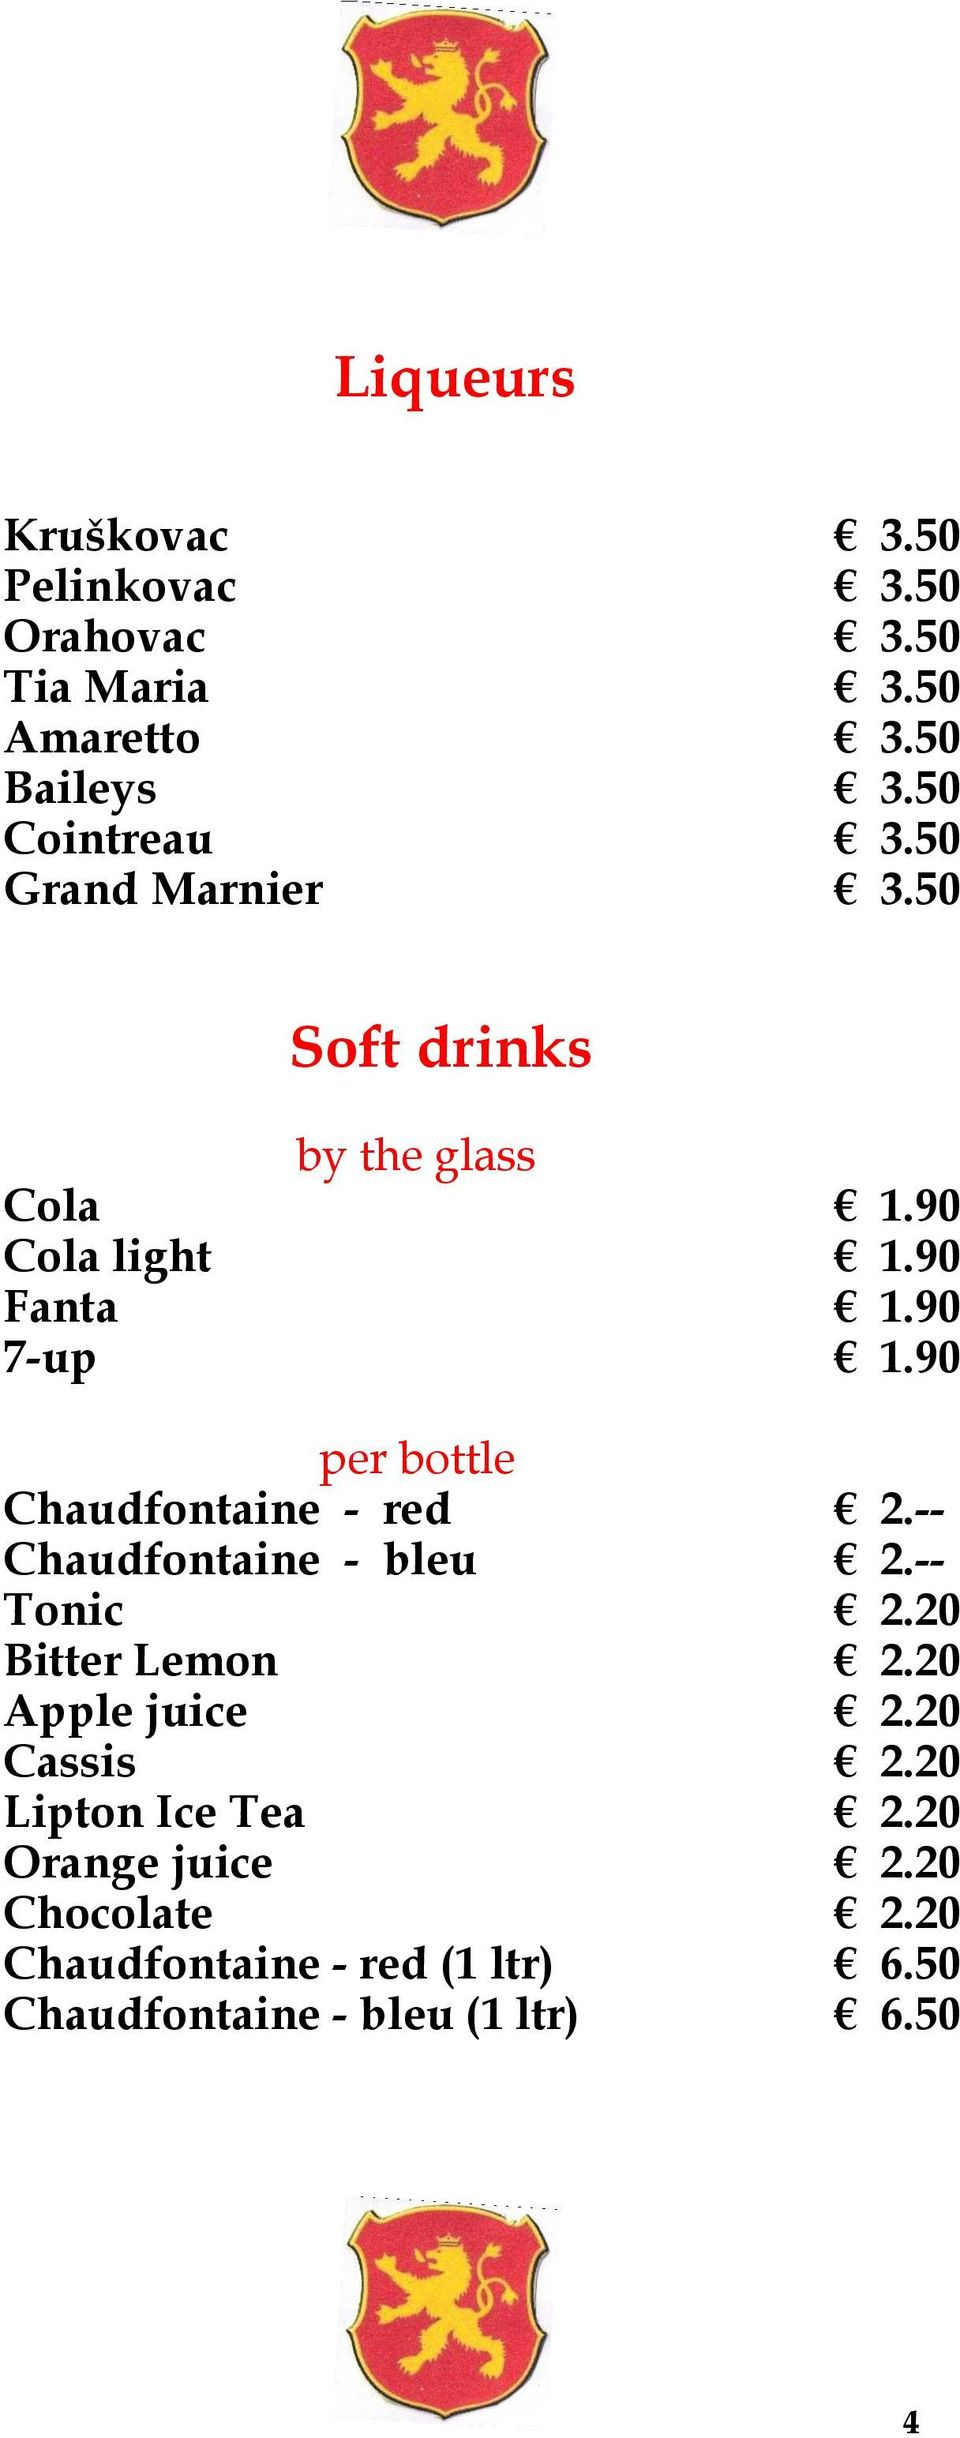 90 per bottle Chaudfontaine - red 2.-- Chaudfontaine - bleu 2.-- Tonic 2.20 Bitter Lemon 2.20 Apple juice 2.